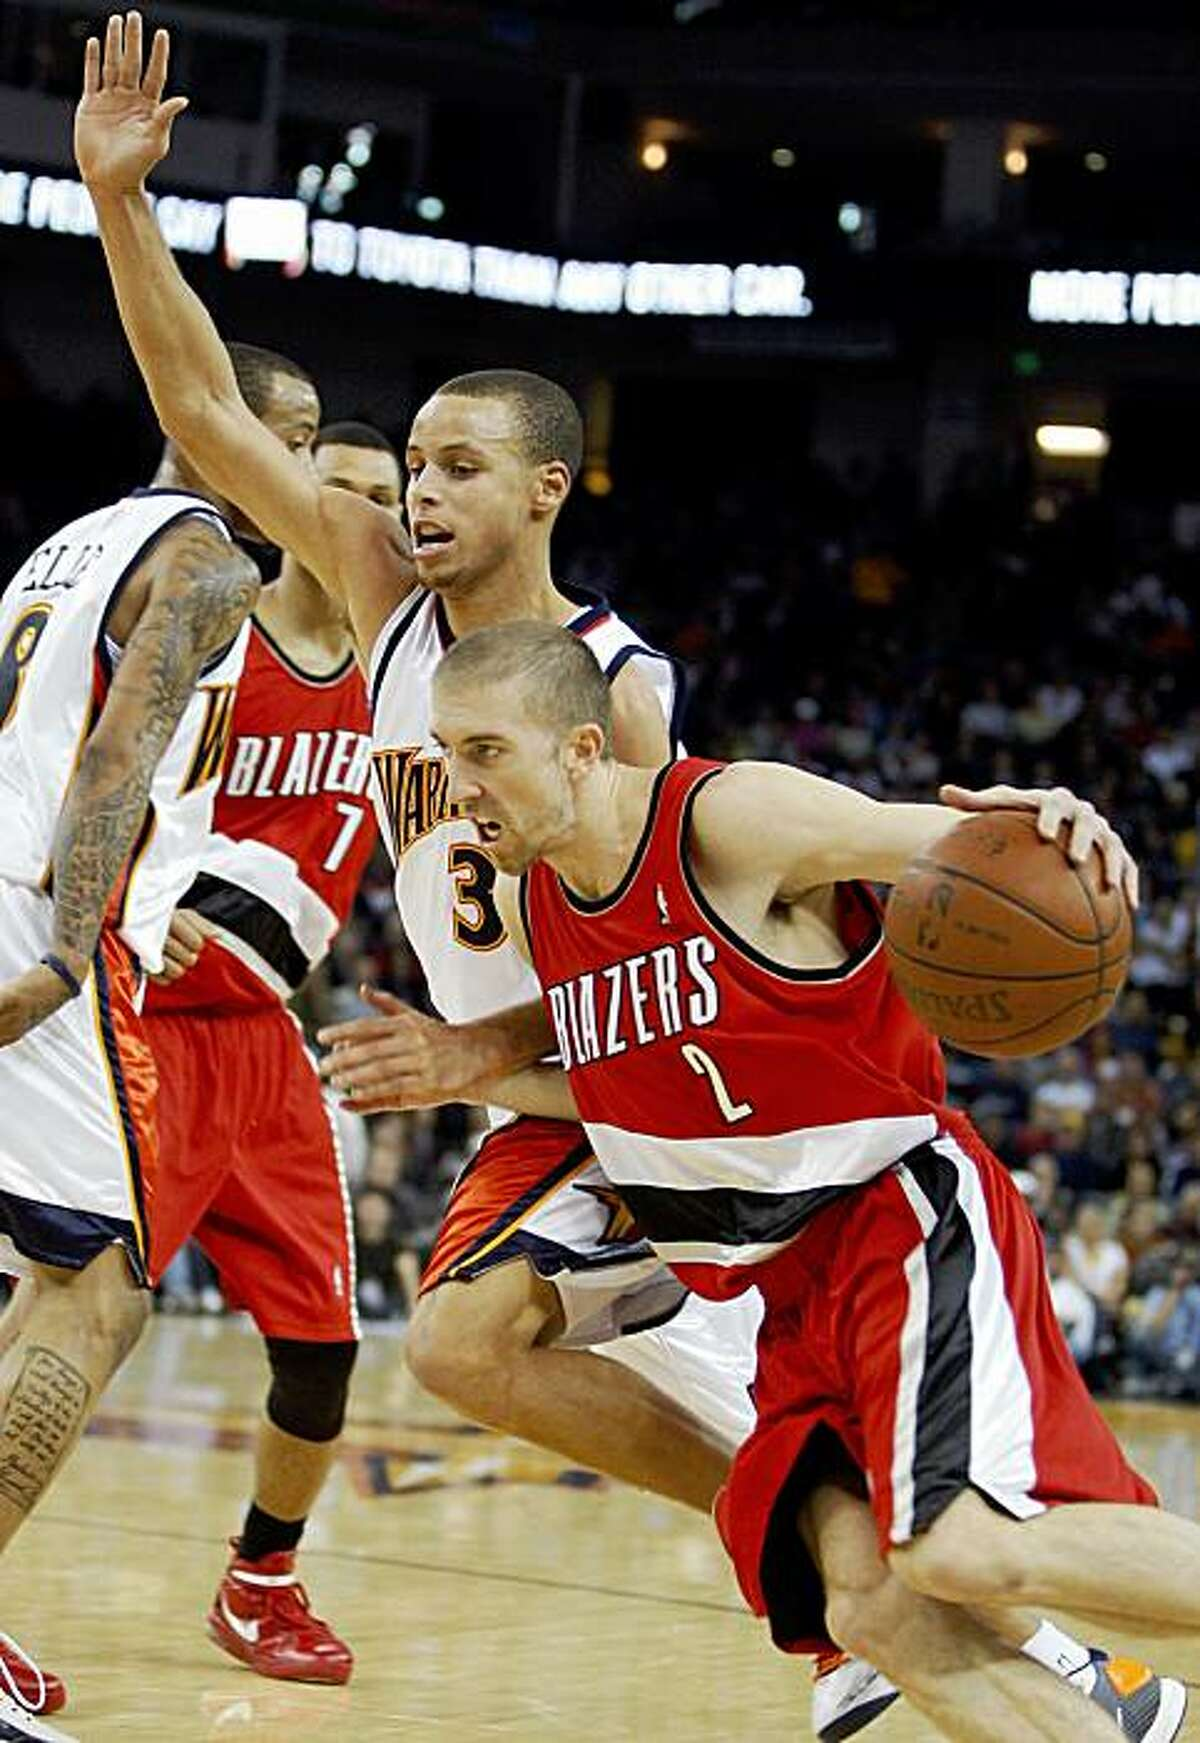 Portland Trail blazers' Steve Blake, right, drives the ball past Golden State Warriors' Stephen Curry during the first half of an NBA basketball game Friday, Nov. 20, 2009, in Oakland, Calif. (AP Photo/Ben Margot)